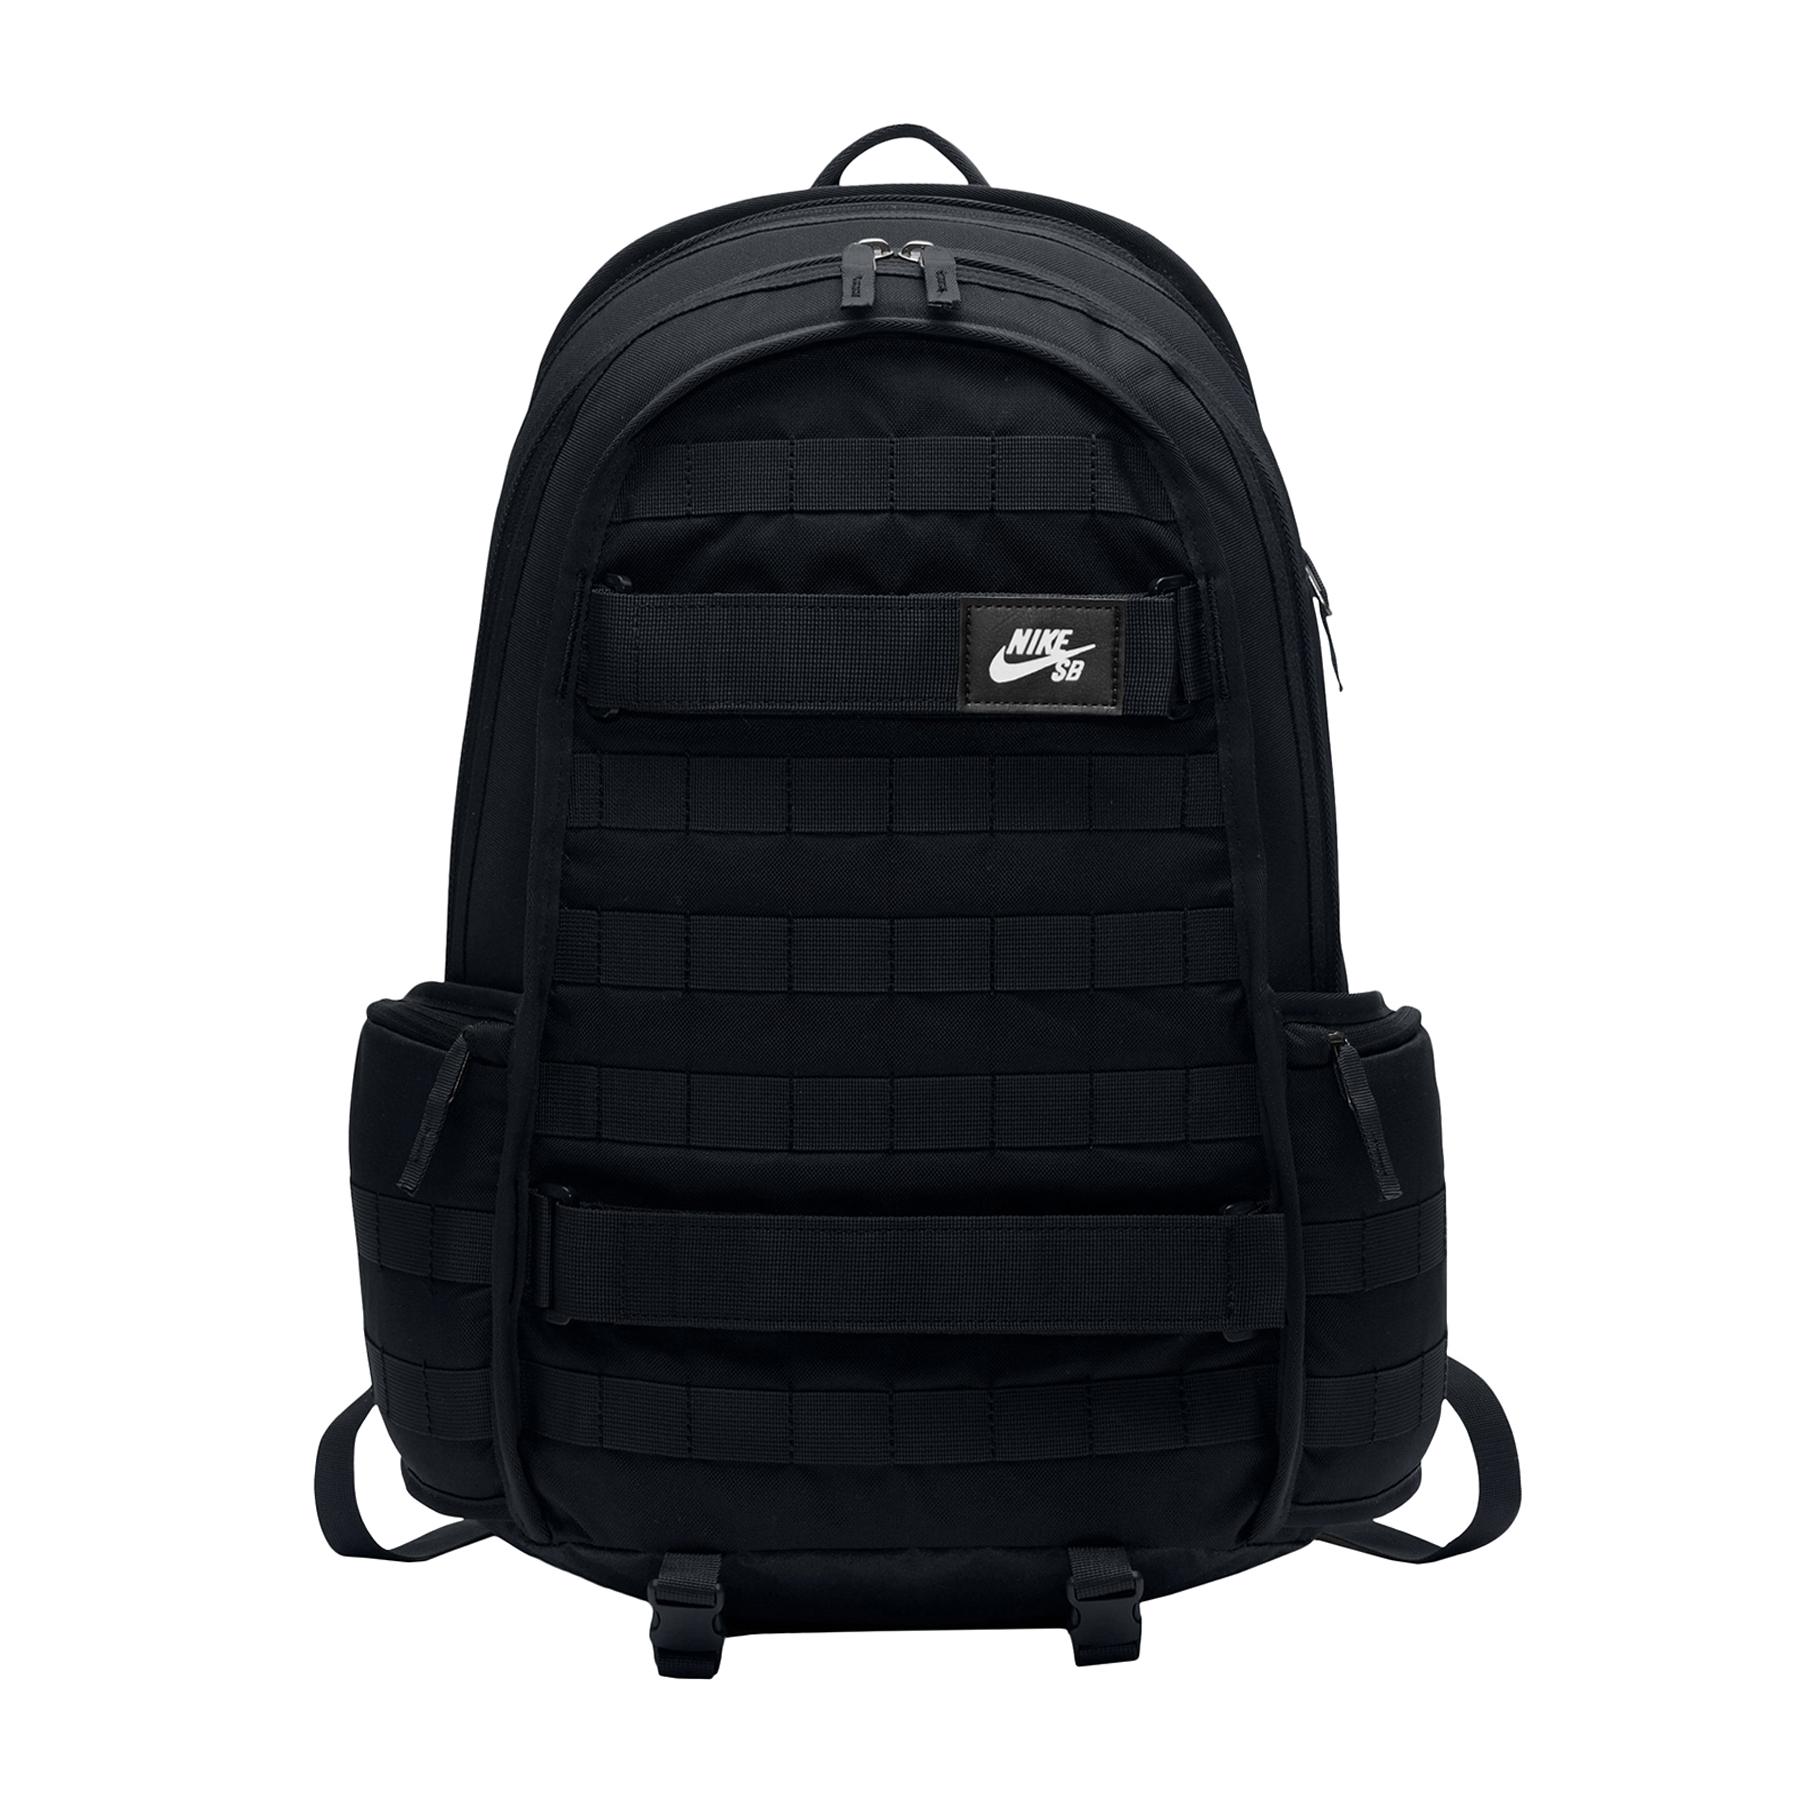 Nike SB RPM Skate Backpack available